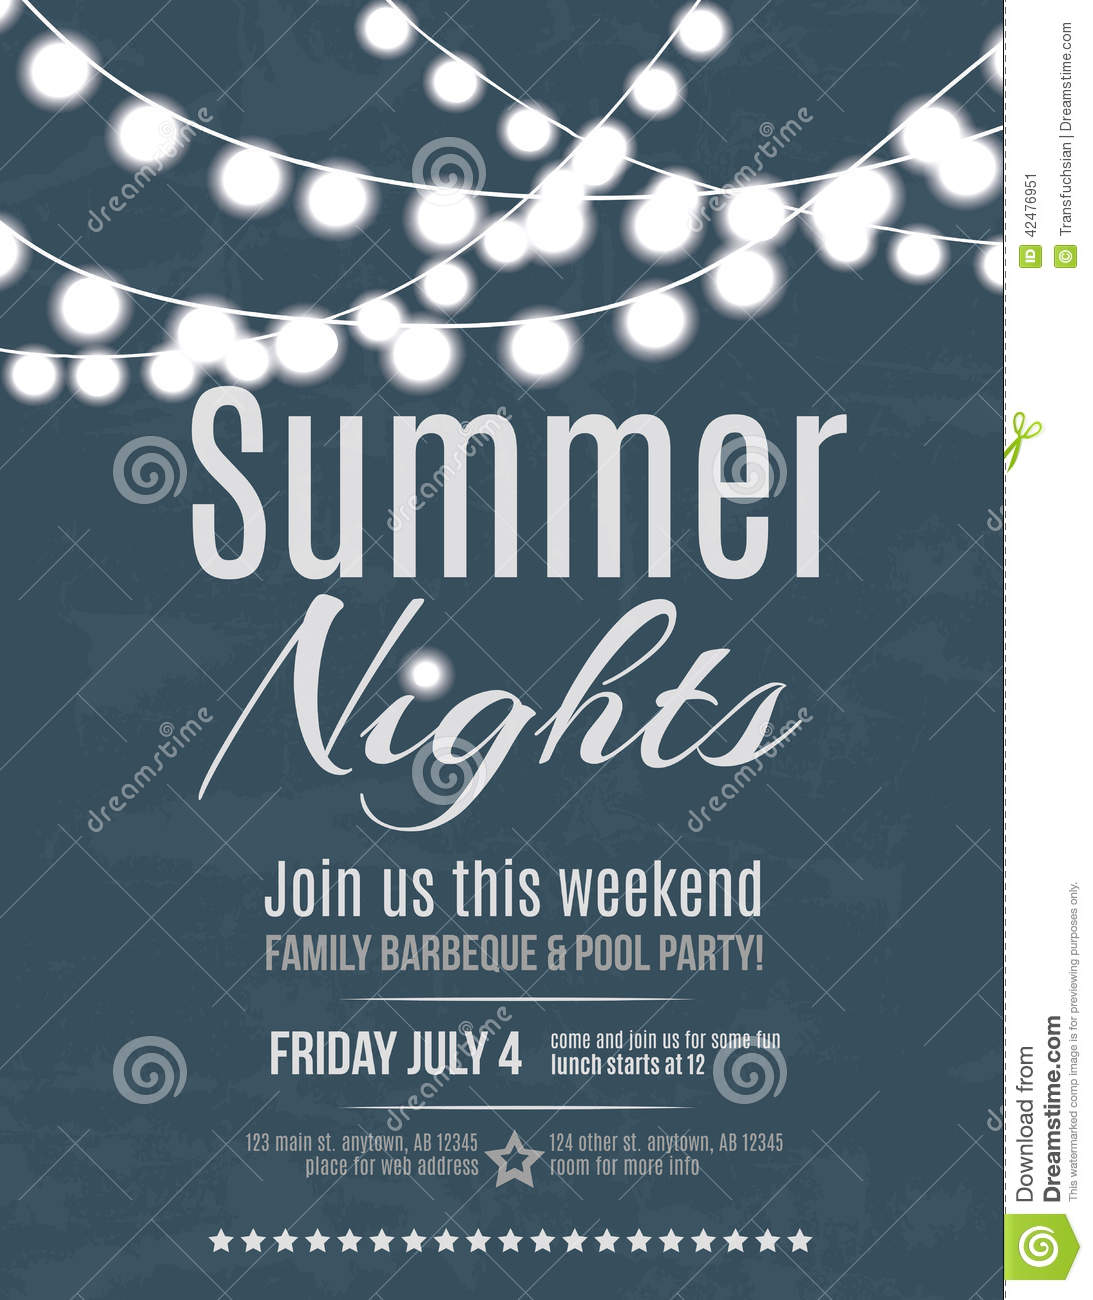 Summer Night Party Invitation Vector Image 42476951 – Party Invitation Flyer